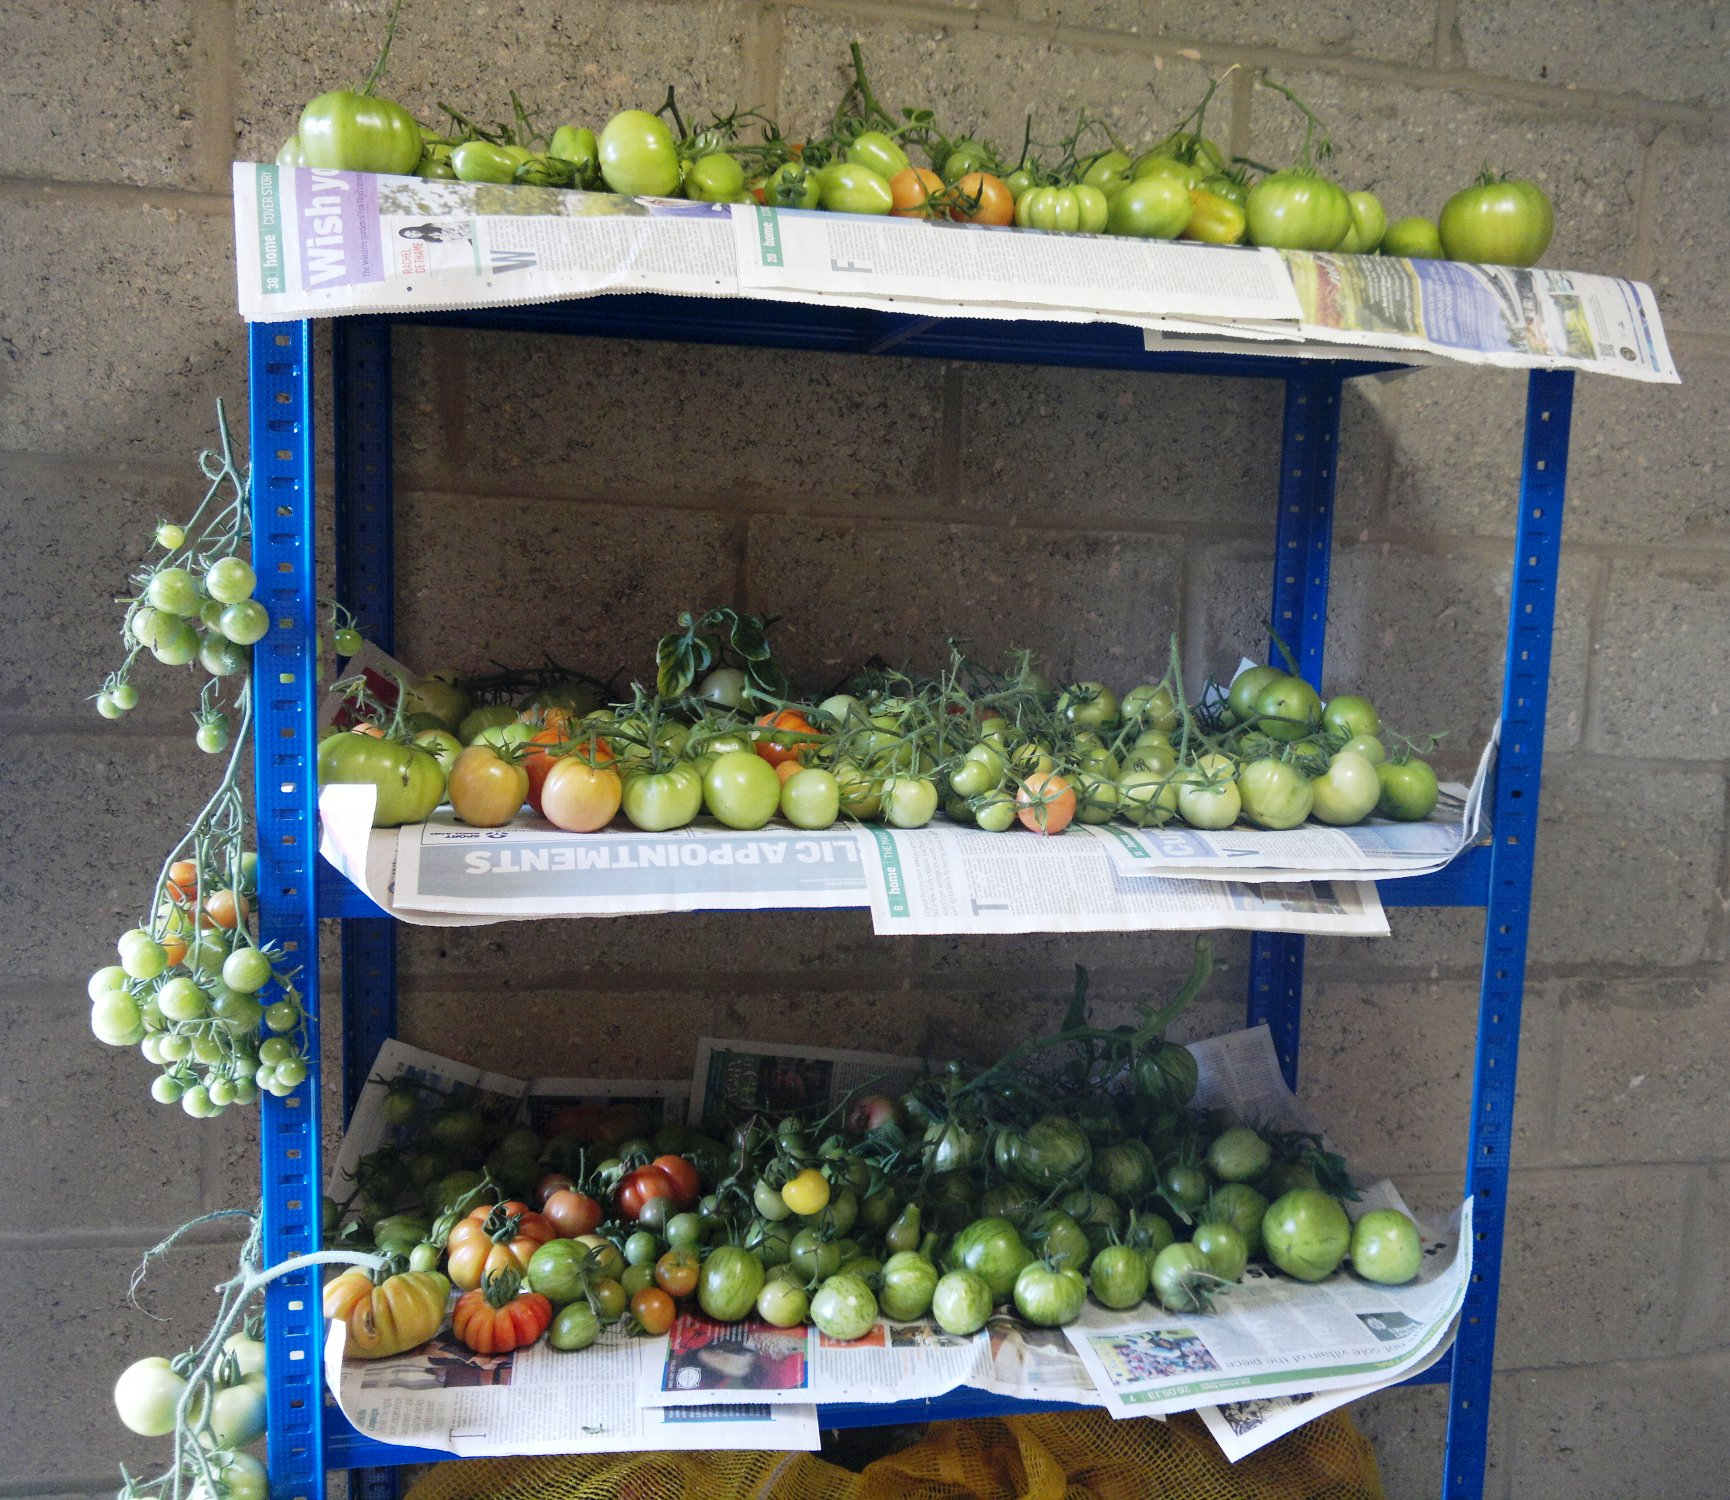 Unripe tomatoes stored for later use